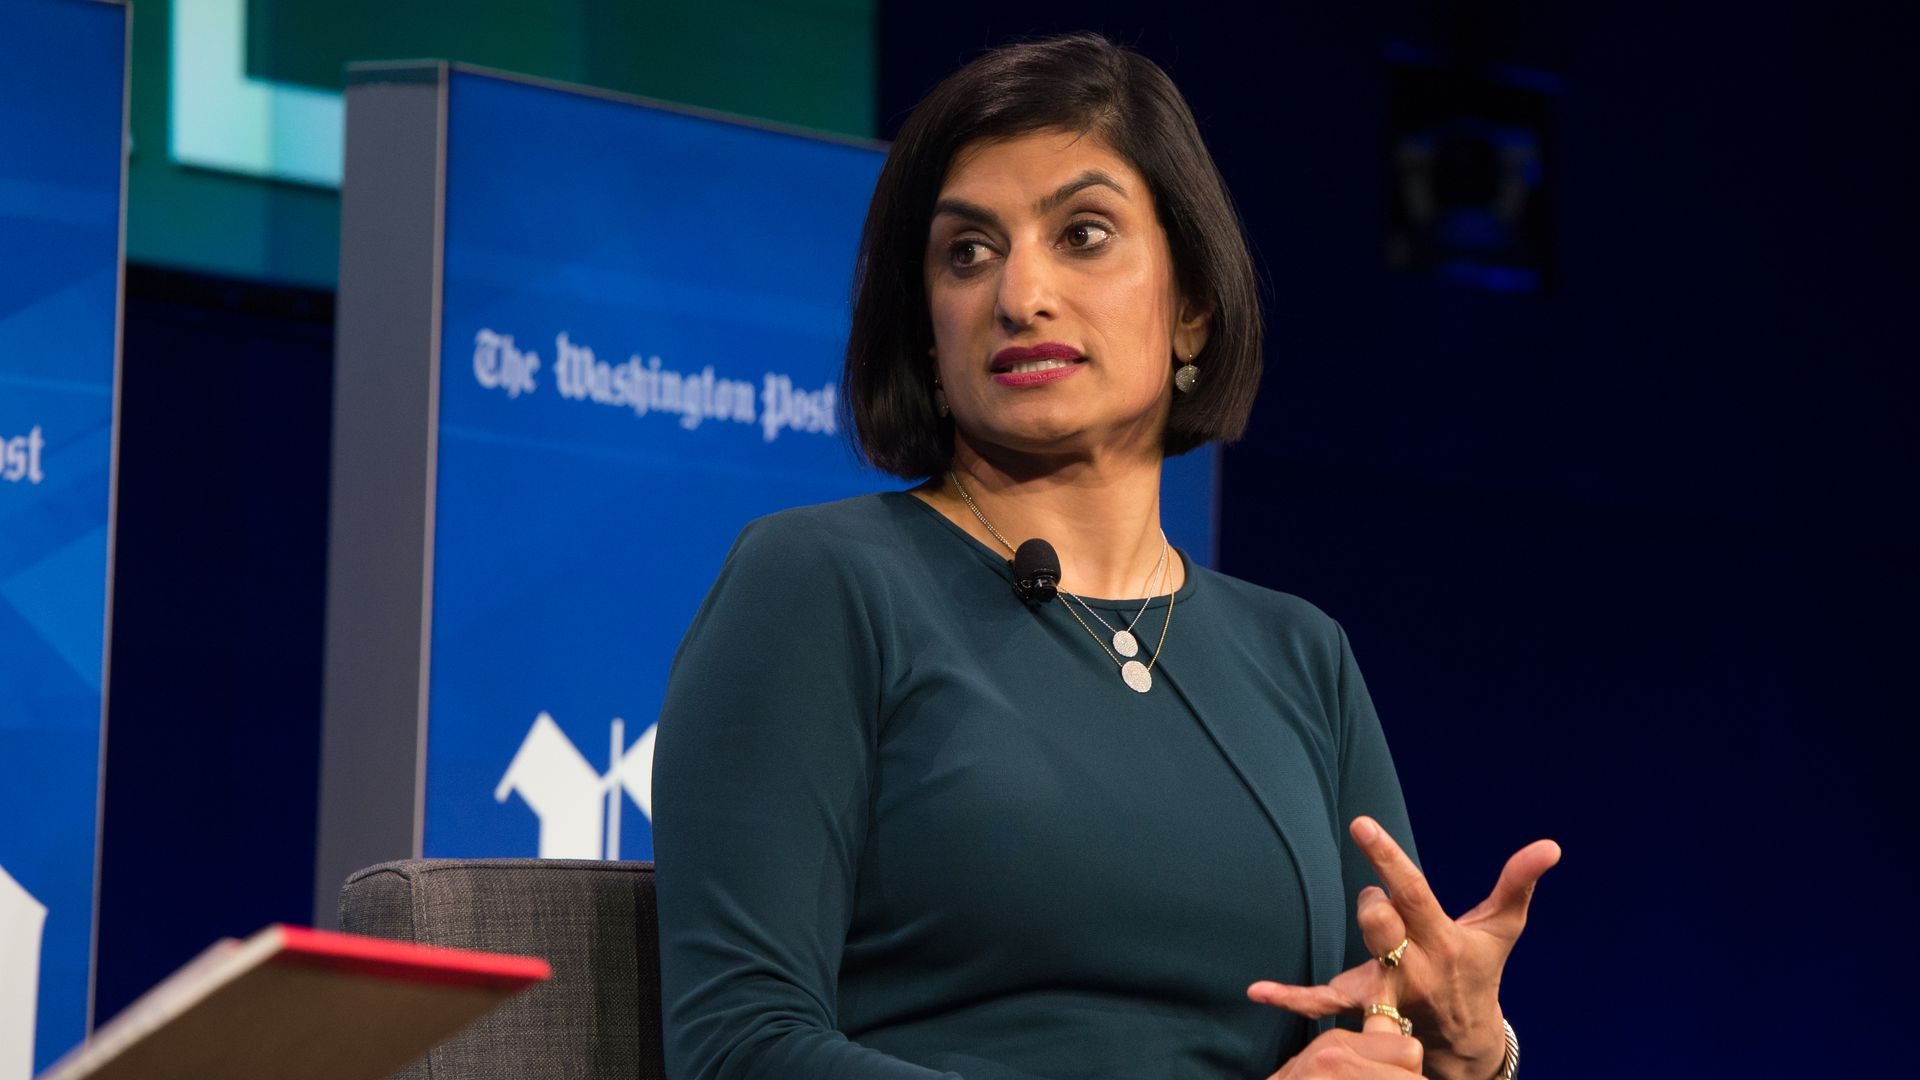 Seema Verma, Administrator of the Centers for Medicare and Medicaid Services, interviewed on stage